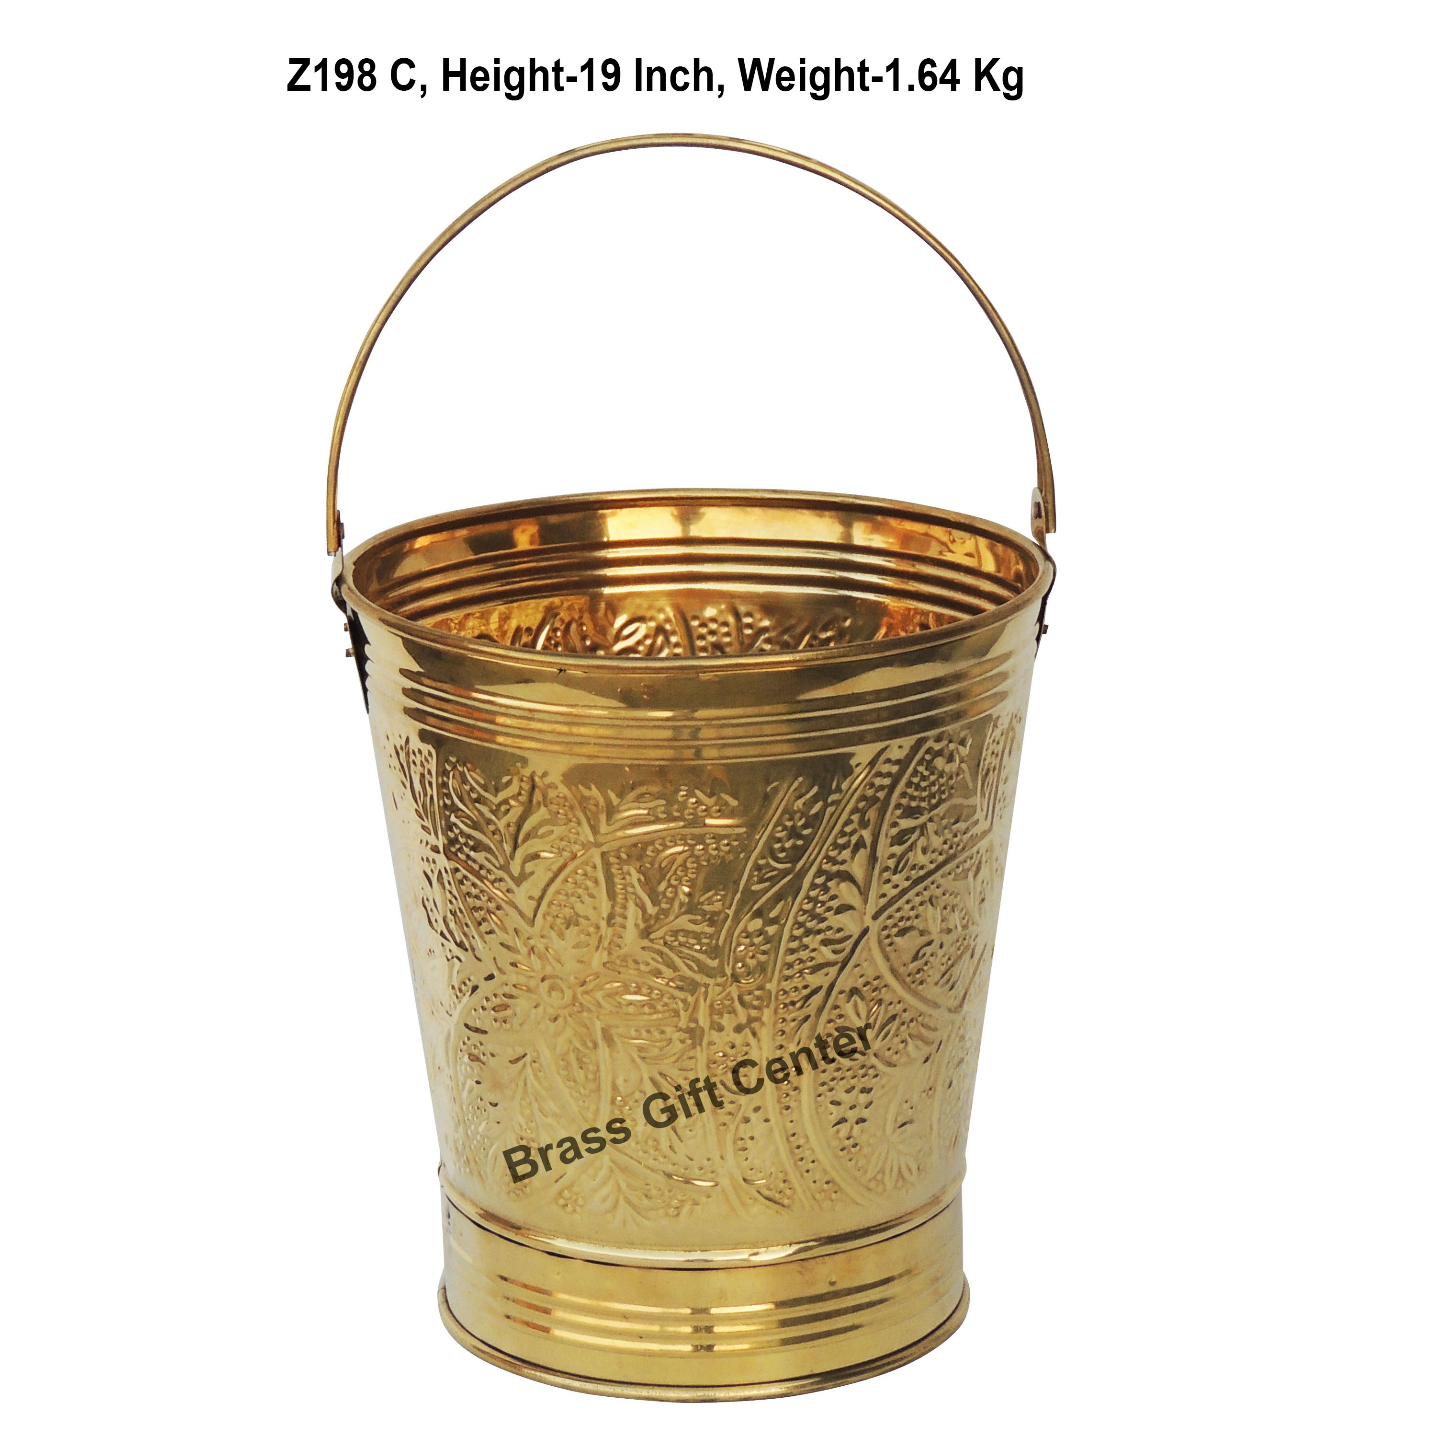 Brass Bucket Balti - 11.7*11.7 Inch  (Z198 C)